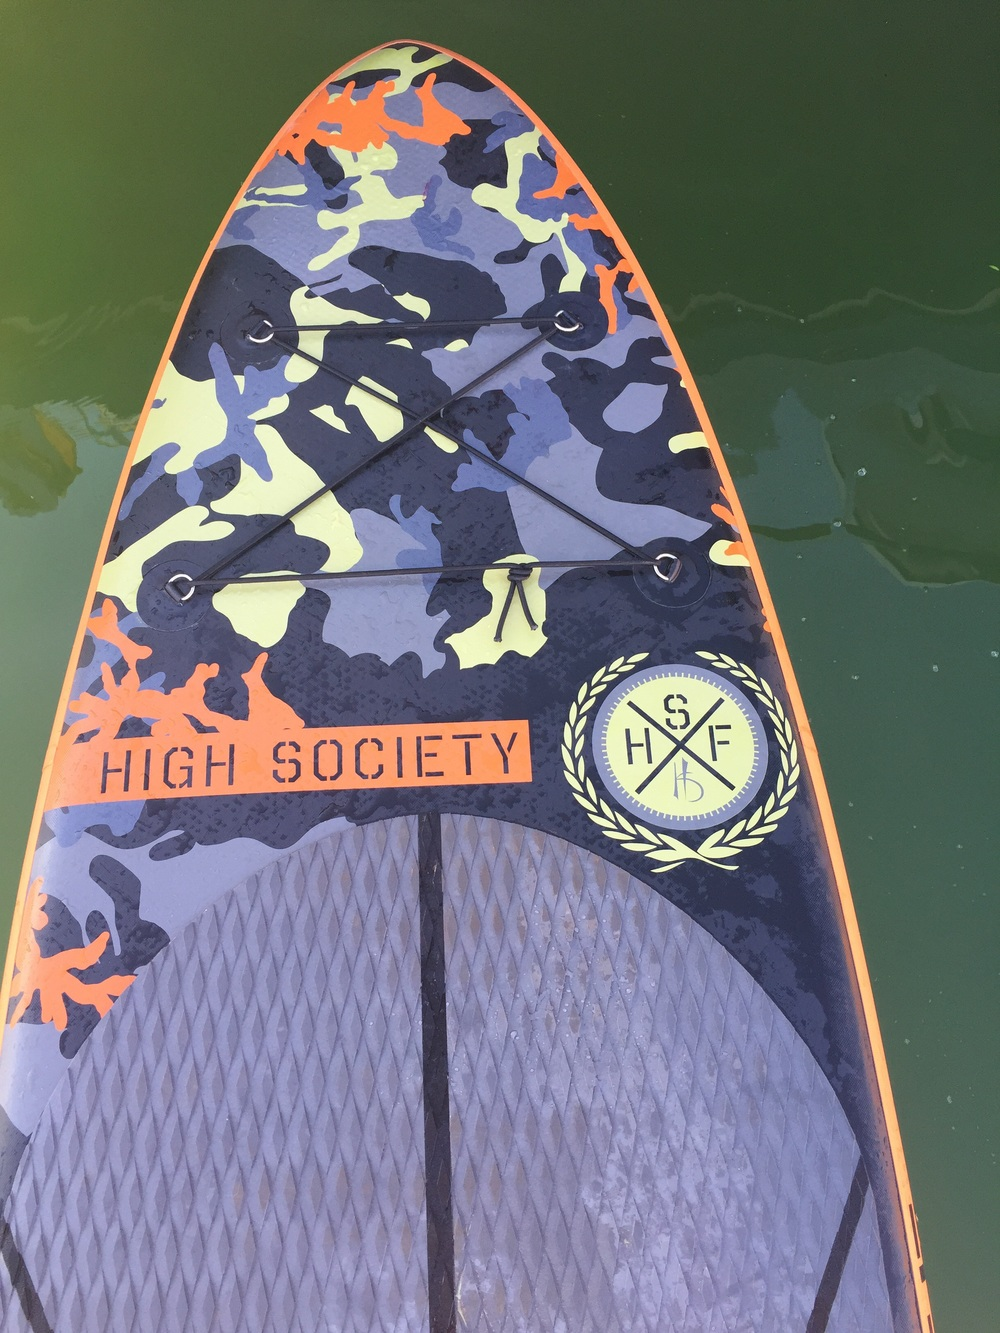 SUP trips on High Society's Northstar iSUP.